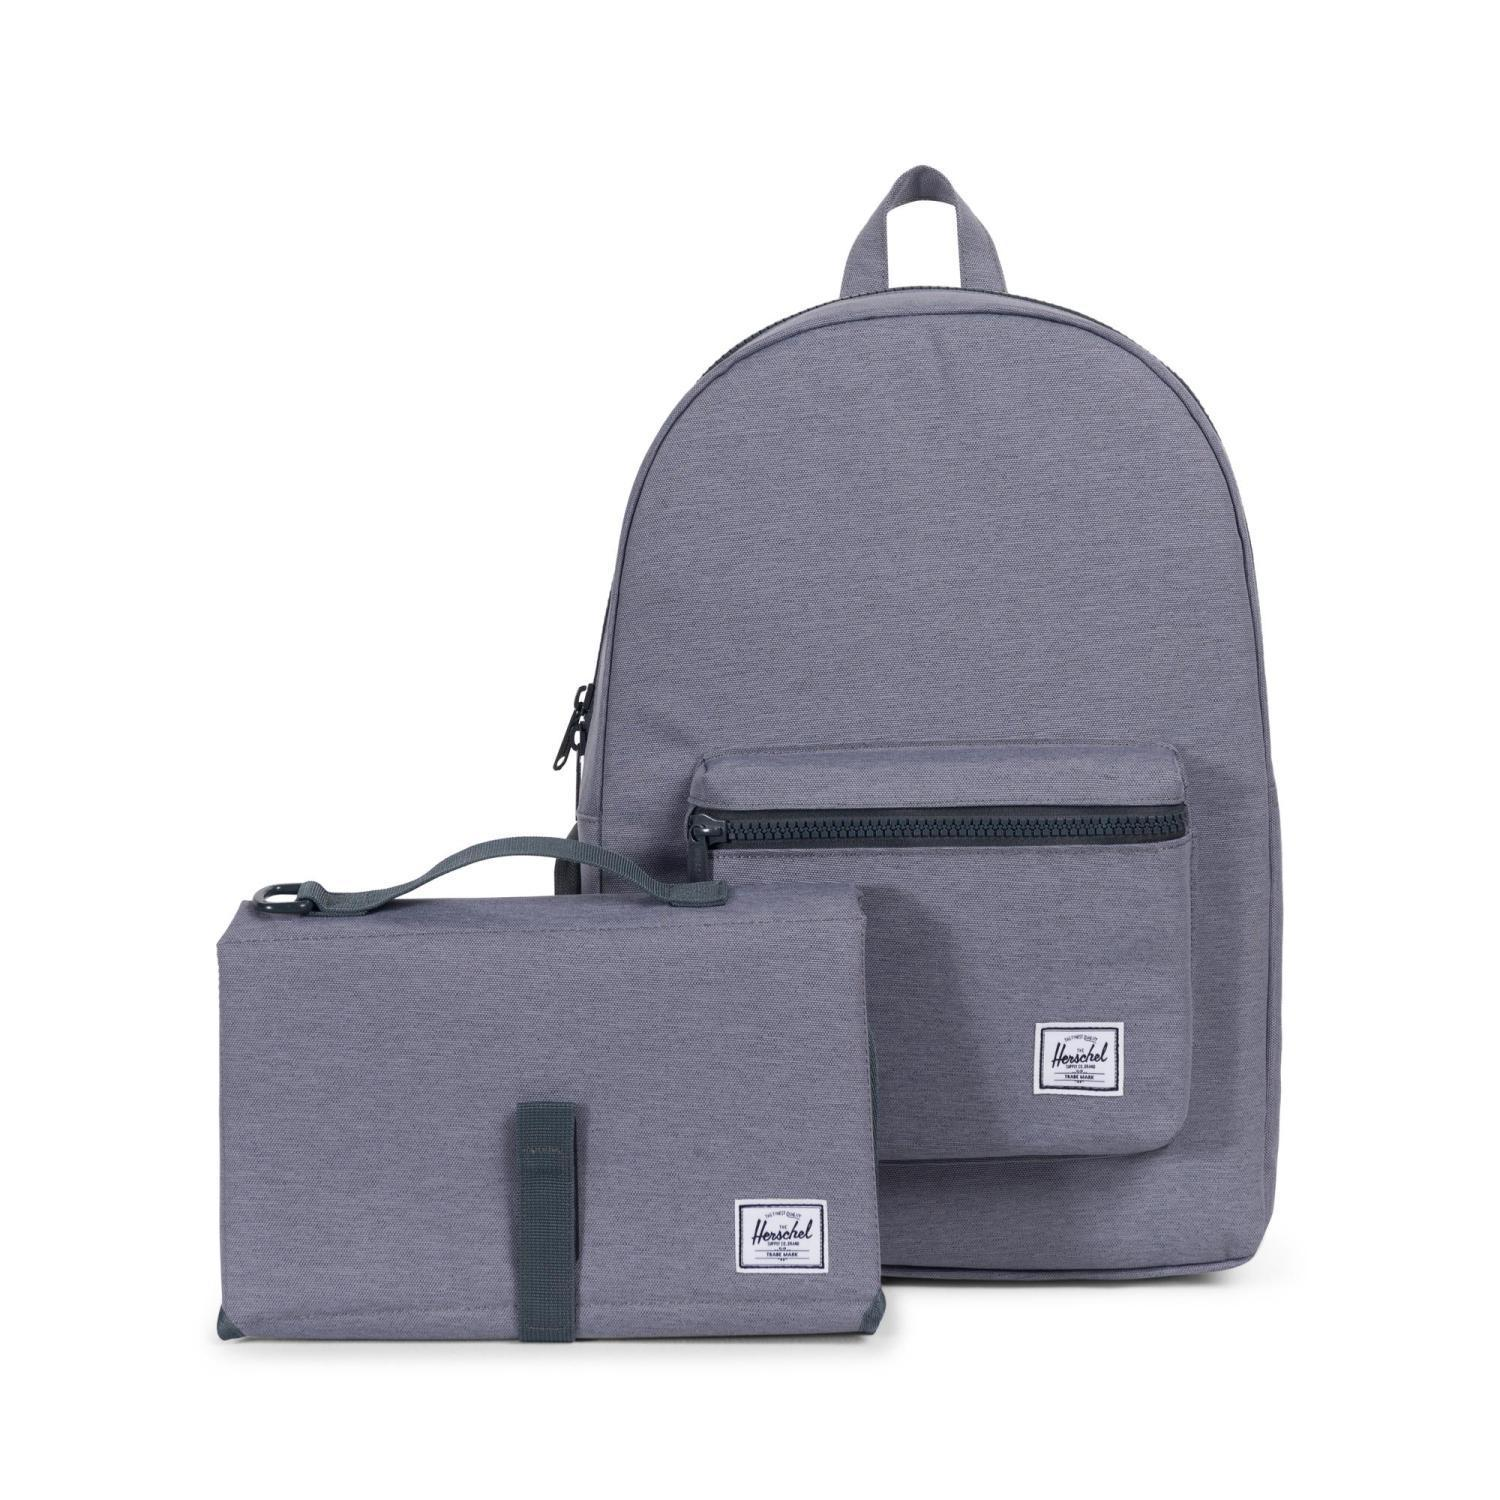 226994c20f Little herschel supply co accessories settlement backpack + sprout in grey  crosshatch